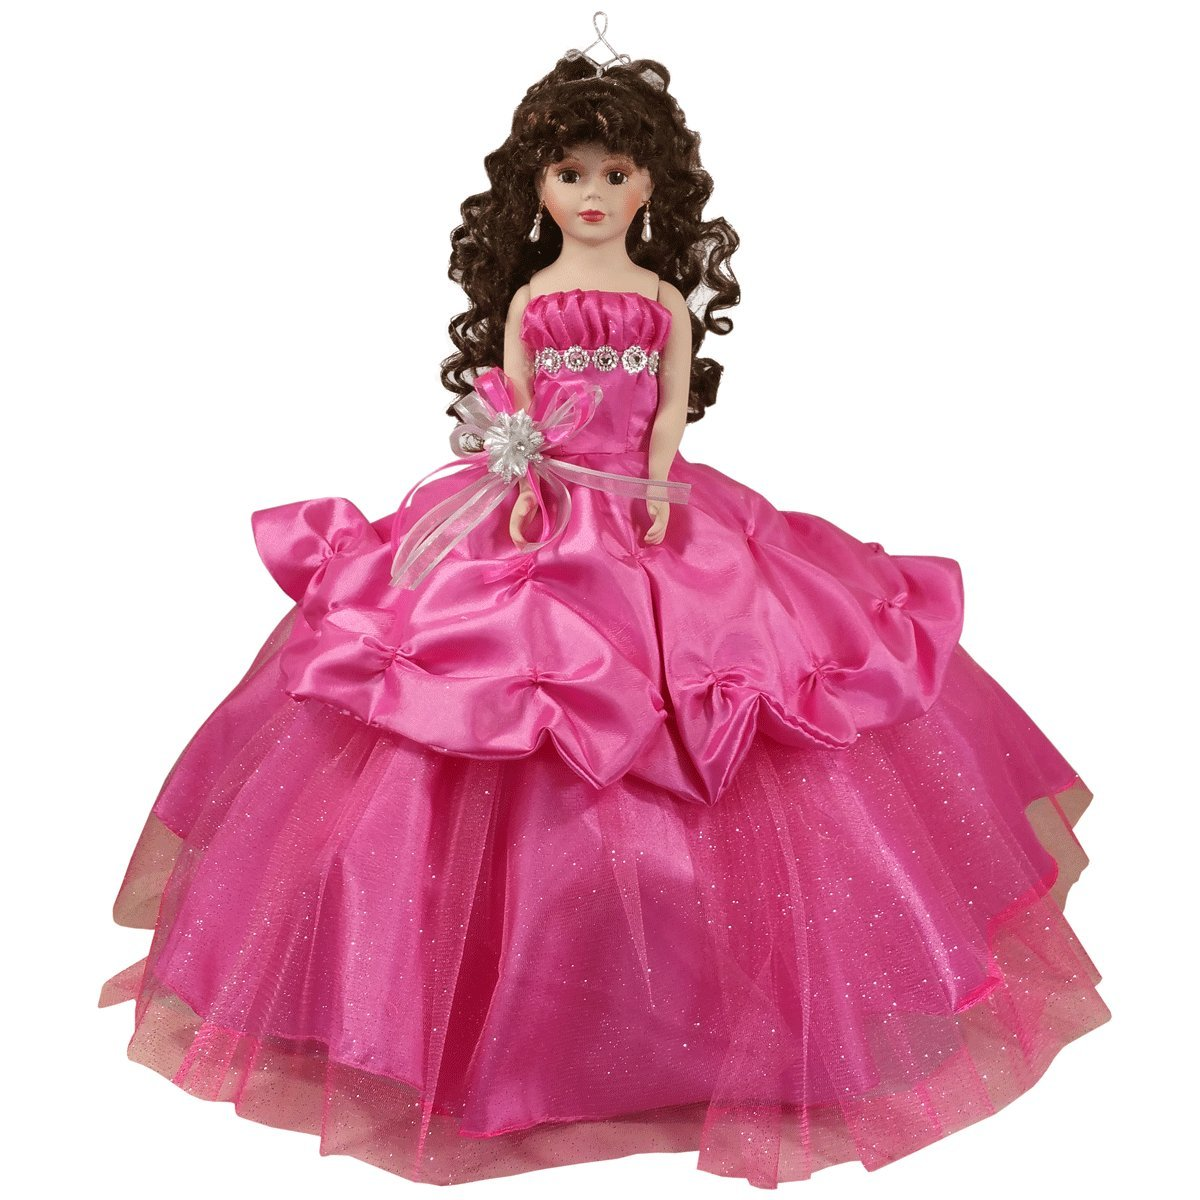 Mis Quince Quinceanera Doll 24 Inches Q2124 (Add arch to doll) by Quinceanera